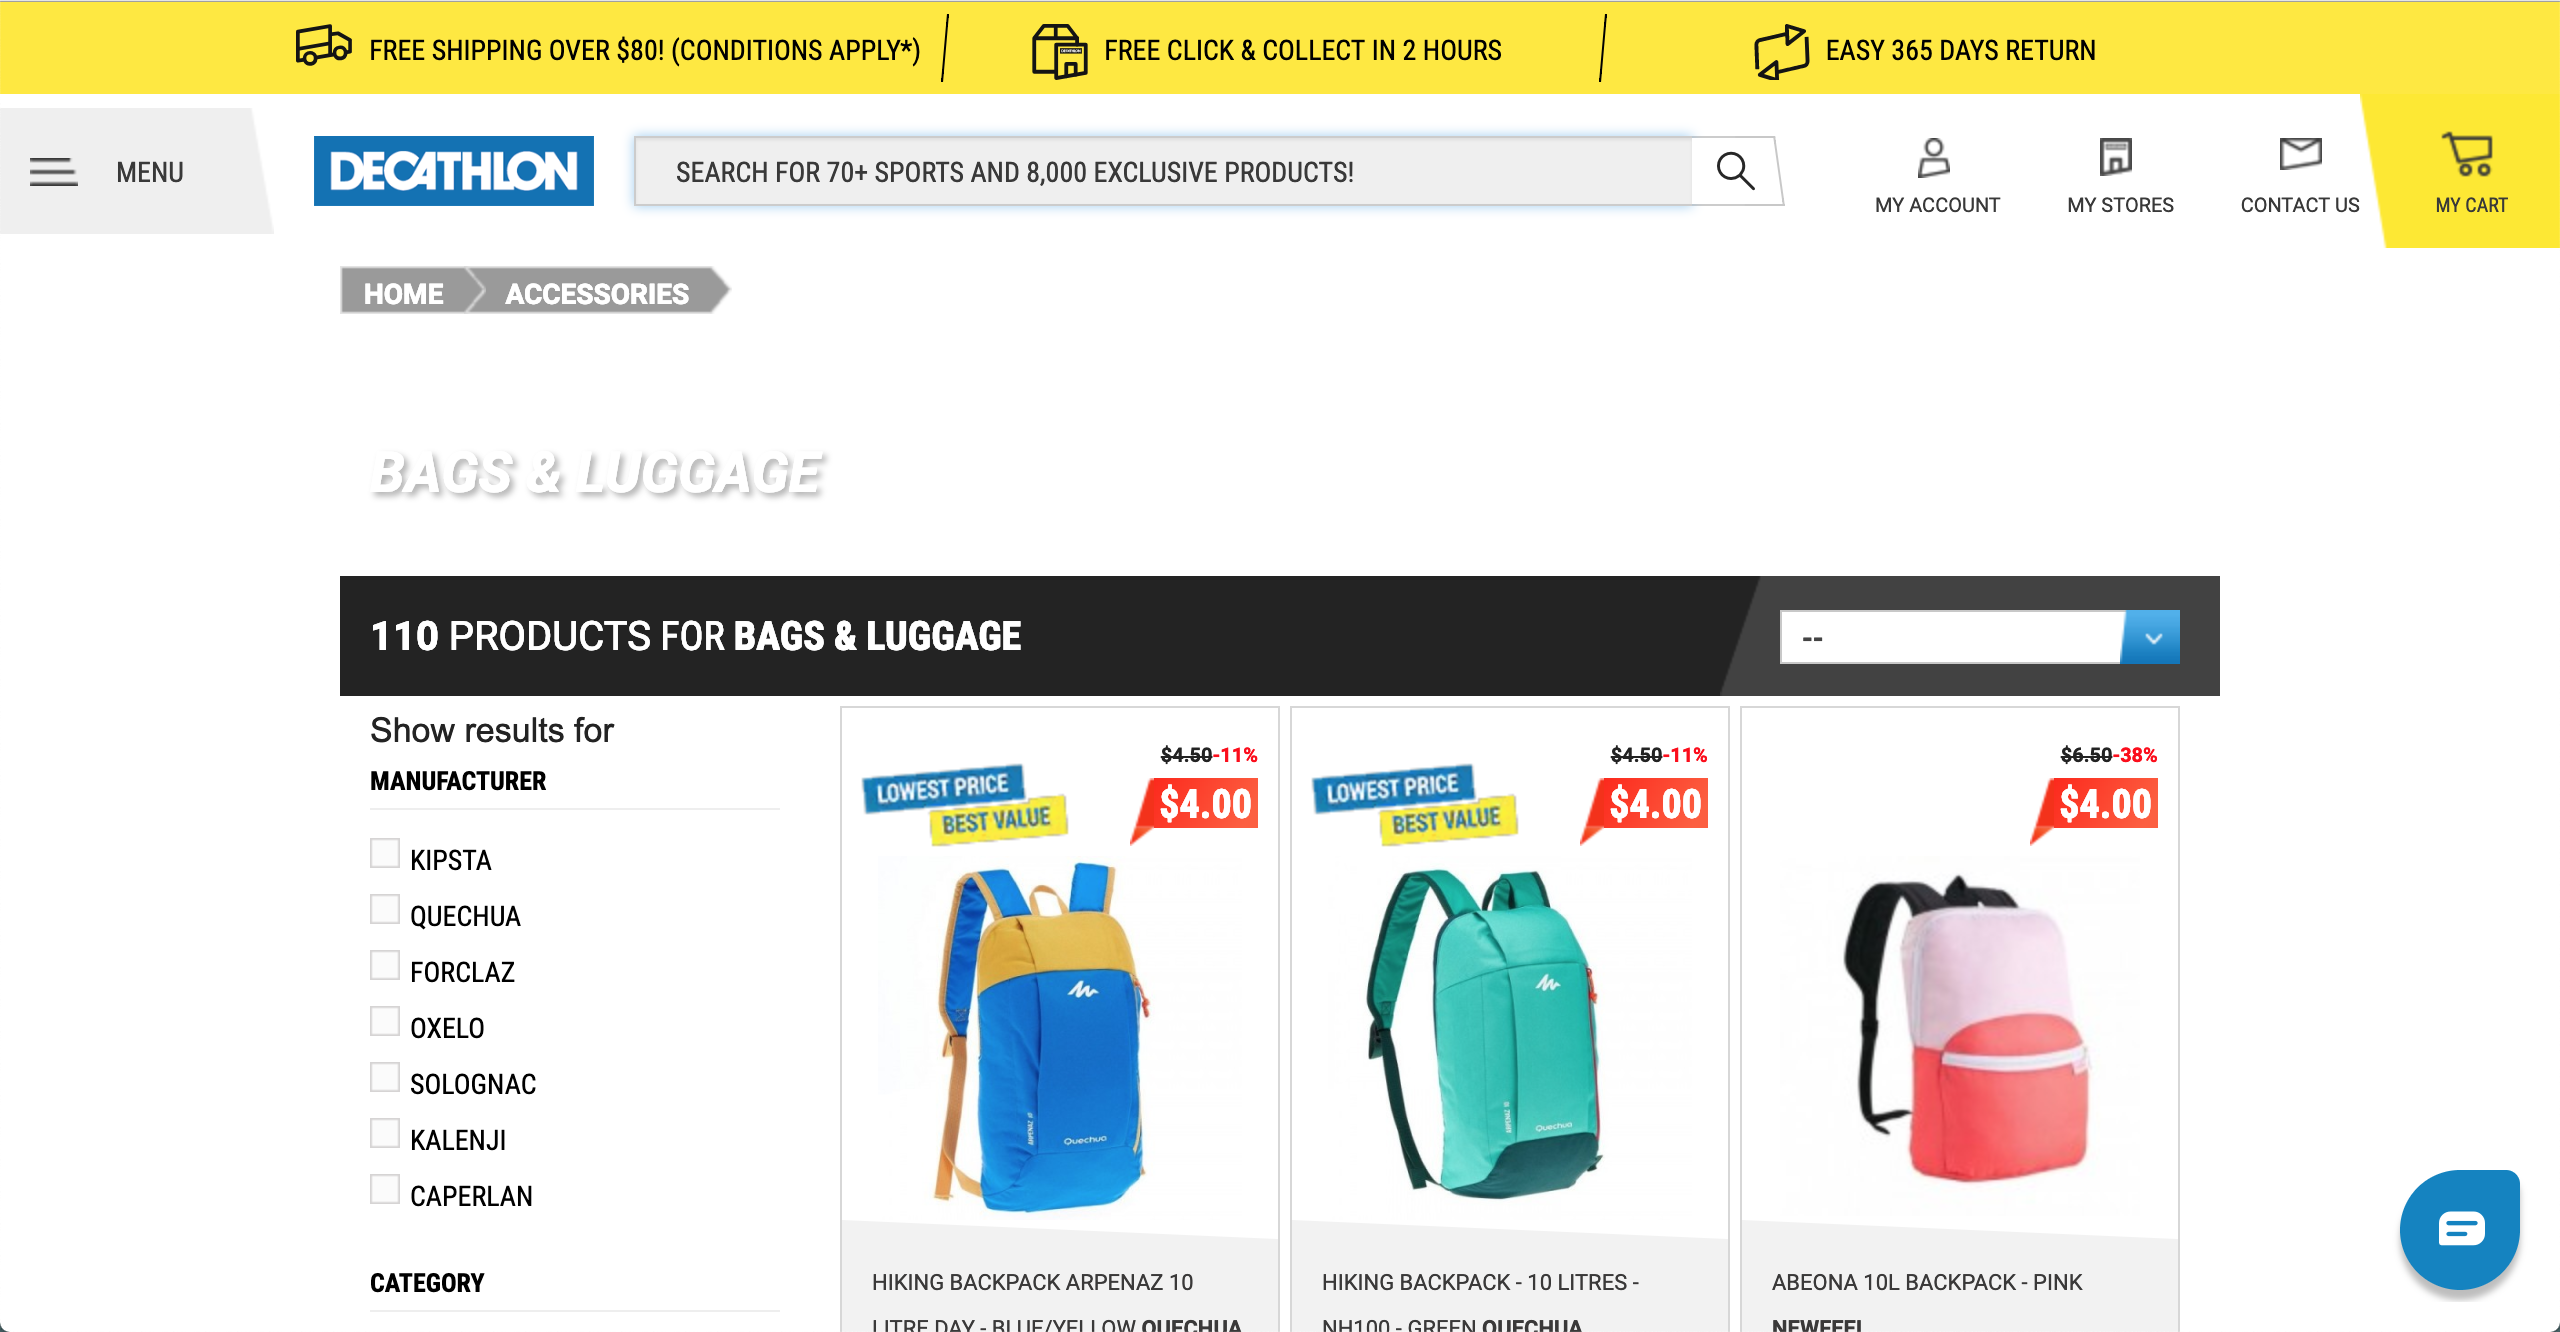 Decathlon Accessories product page